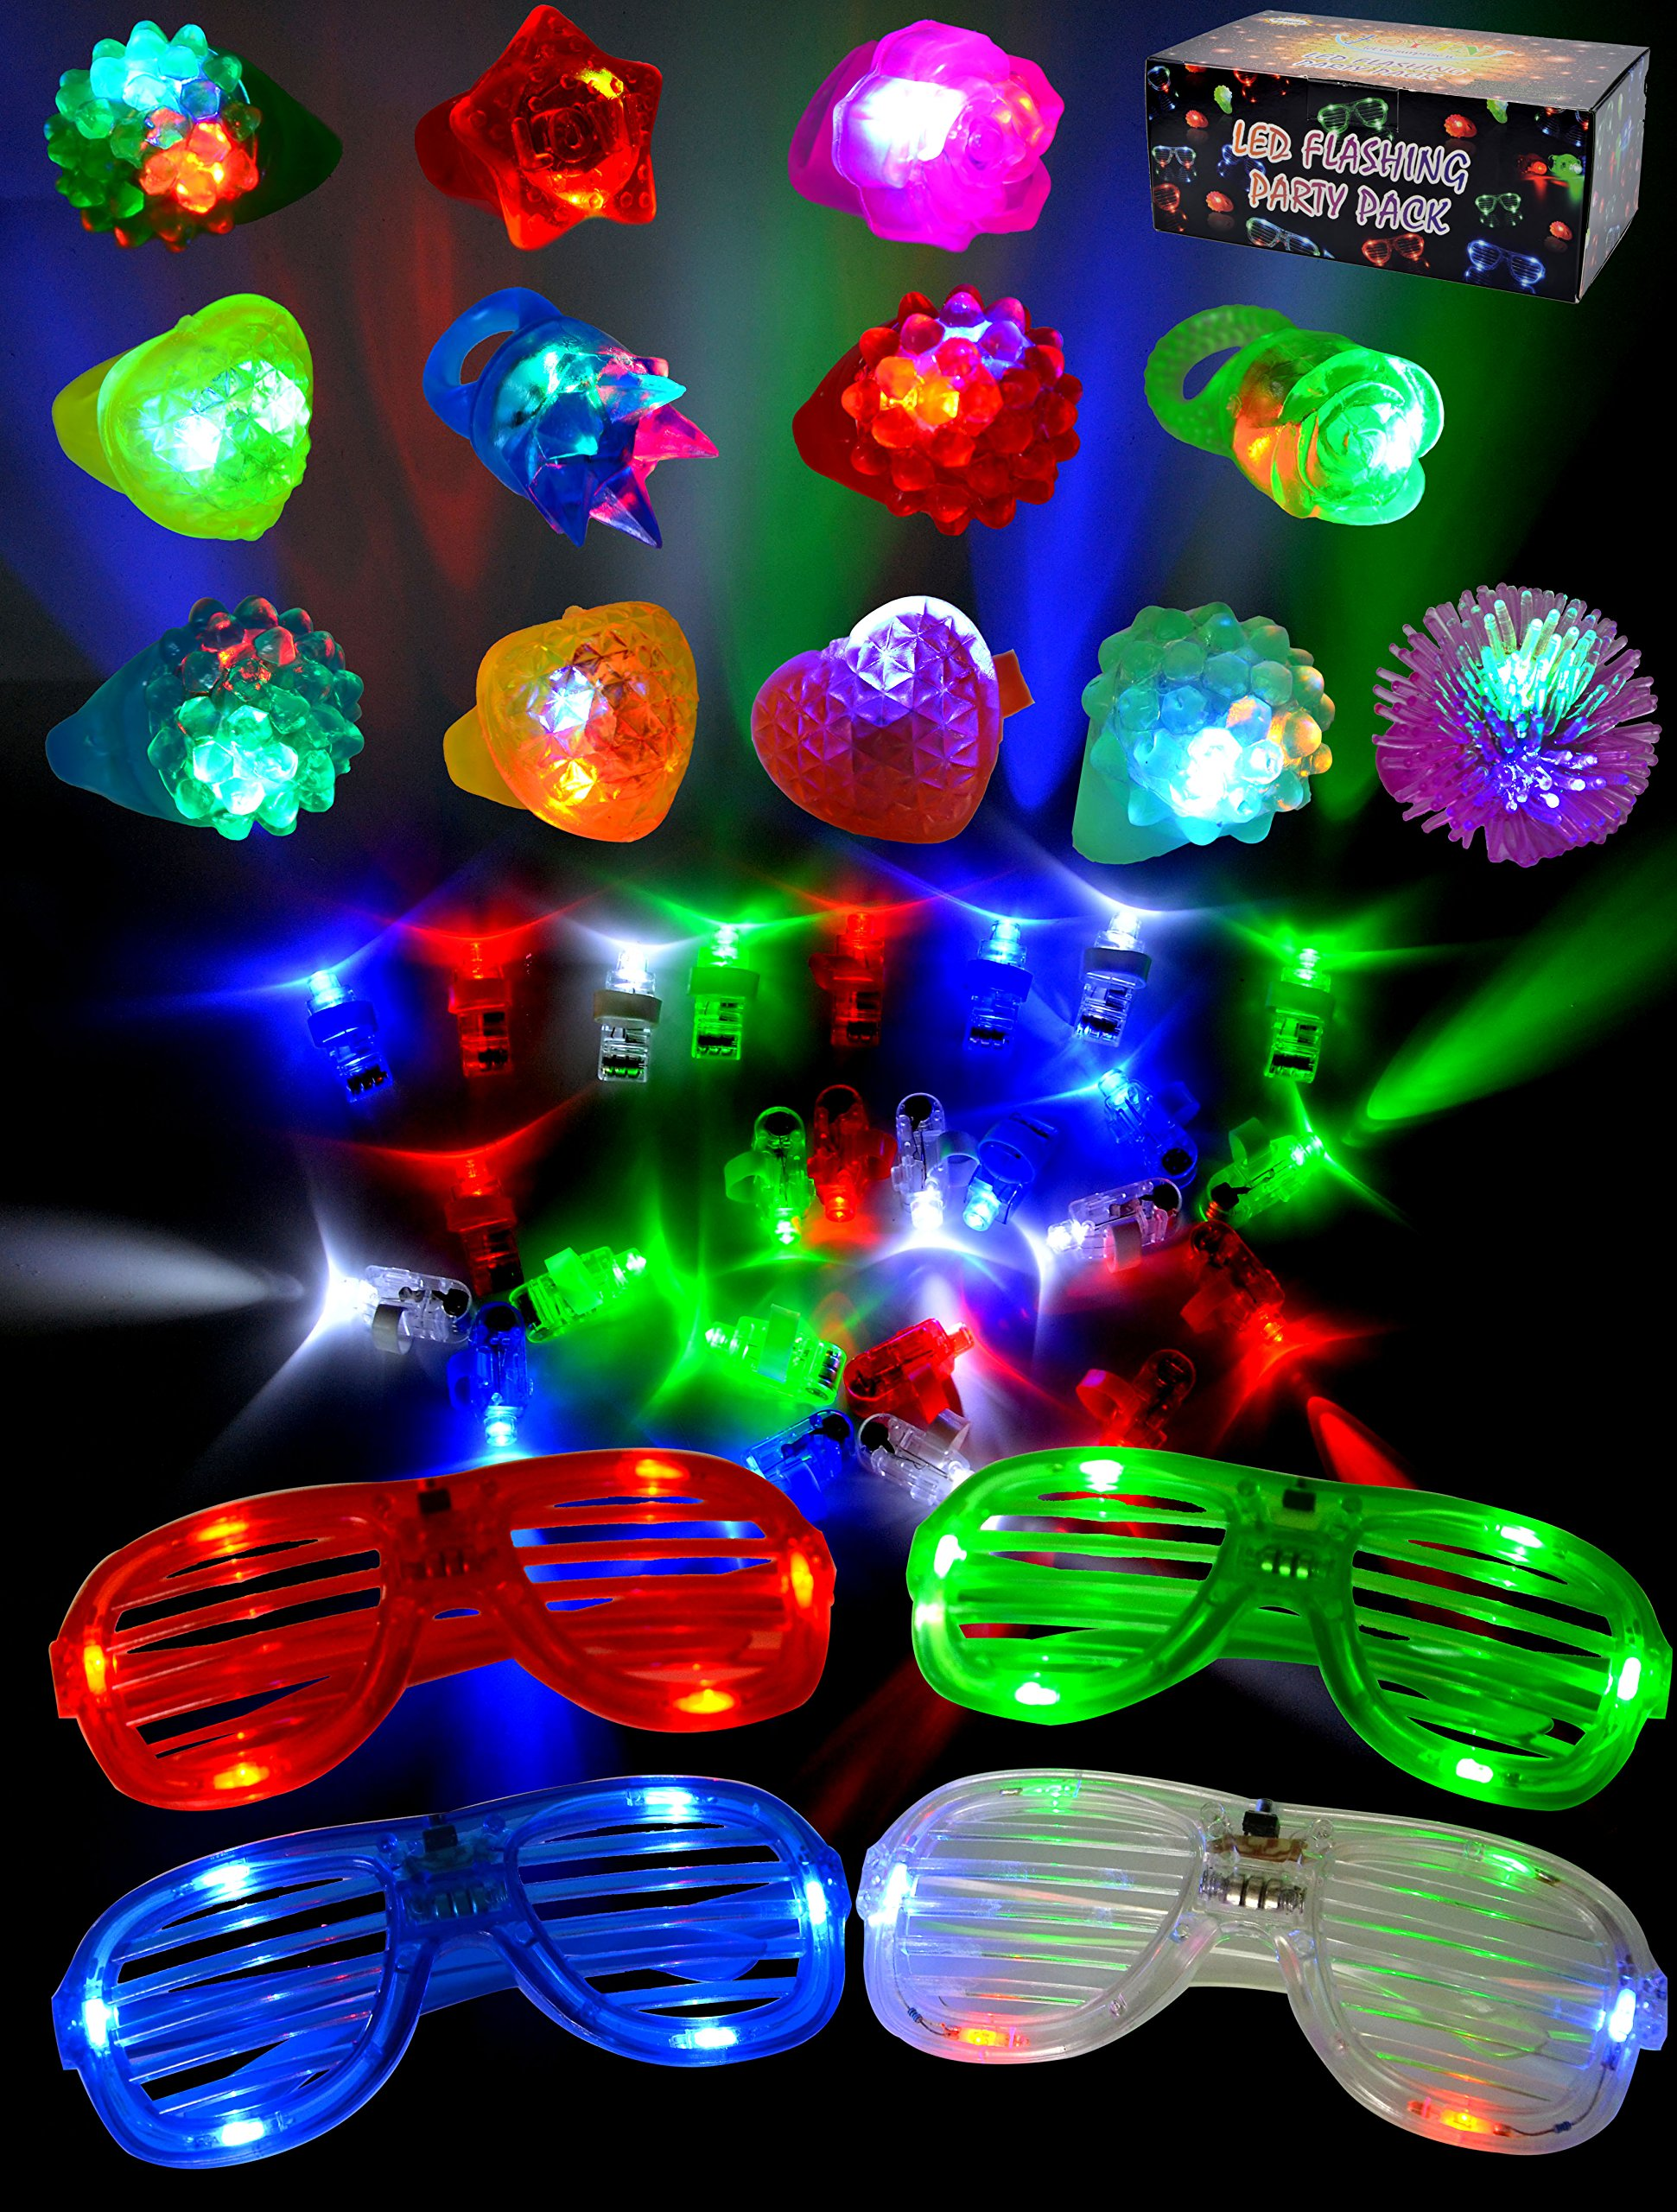 shopping shades product music worldwide free up color pack shipping sourcingbay musical led info glasses multi on sound flashing light